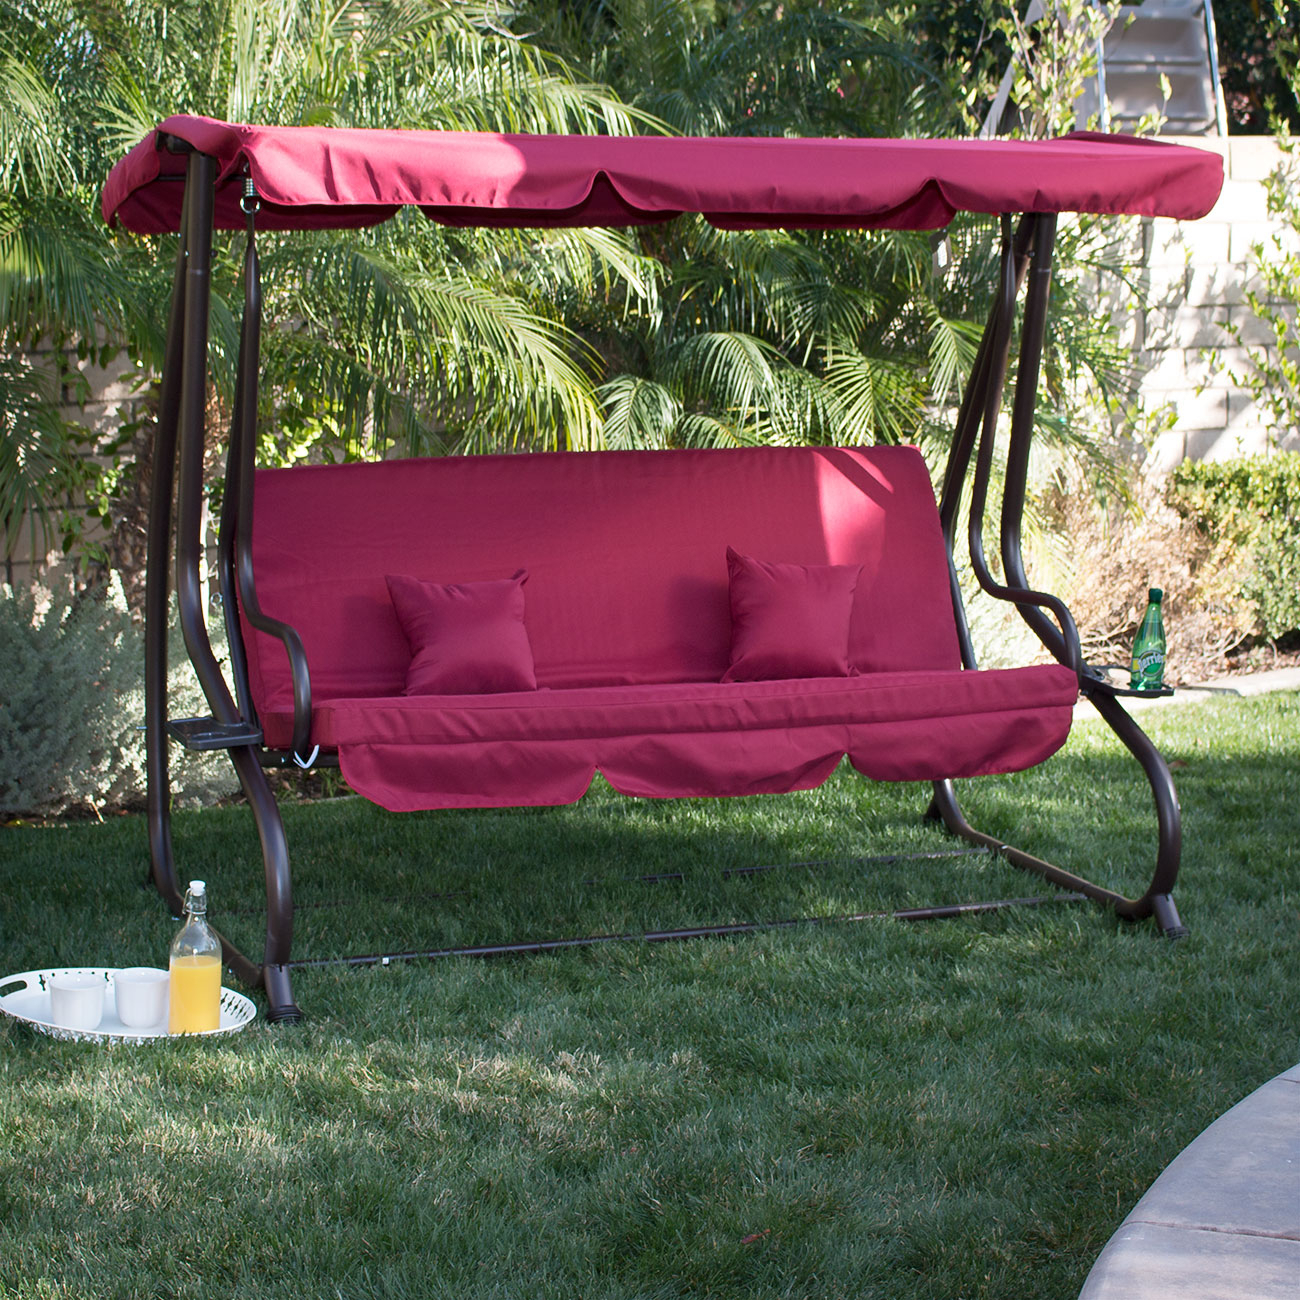 Details About Burgundy Outdoor Canopy Swing Motion Gilder Converting  Rocking Chair Uv Blocker In Canopy Patio Porch Swings With Pillows And Cup Holders (View 23 of 25)